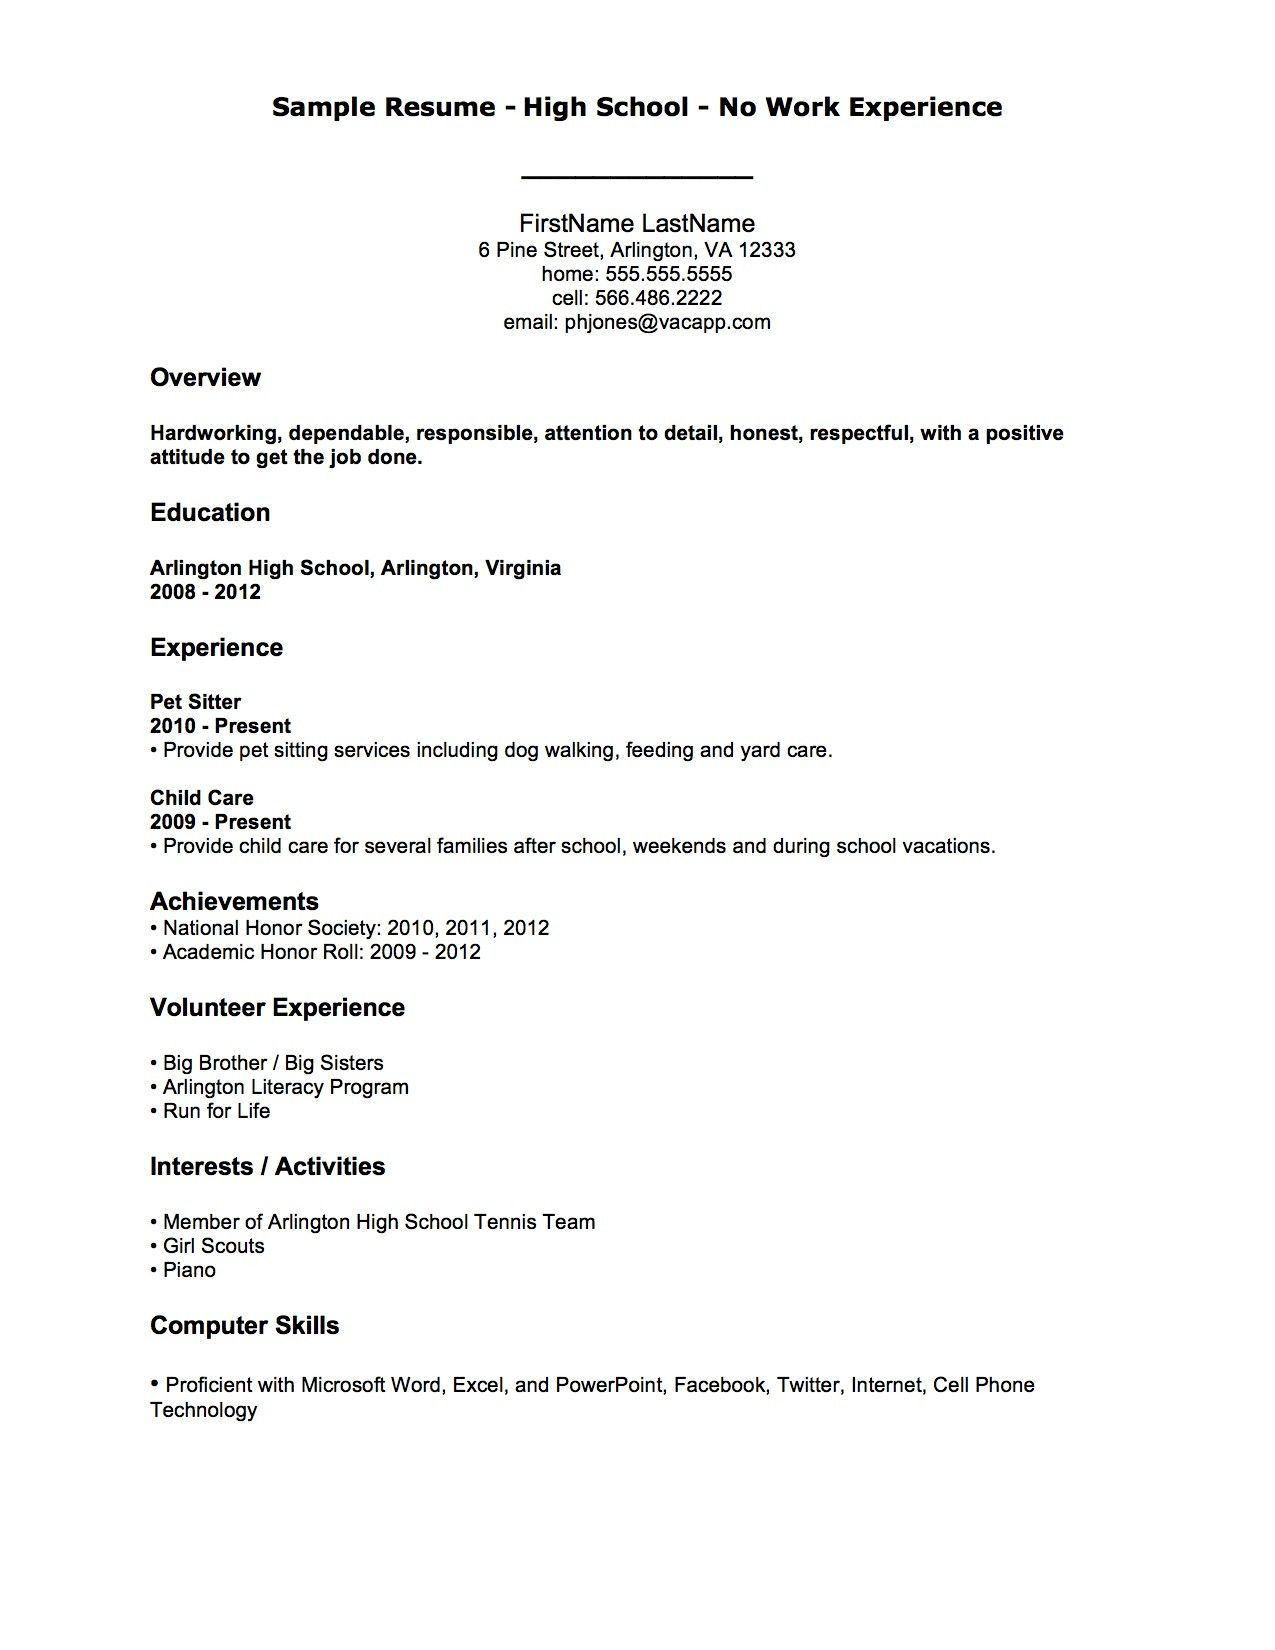 Resume For First Job How To Write A Resume For A Job With No Experience  Google Search